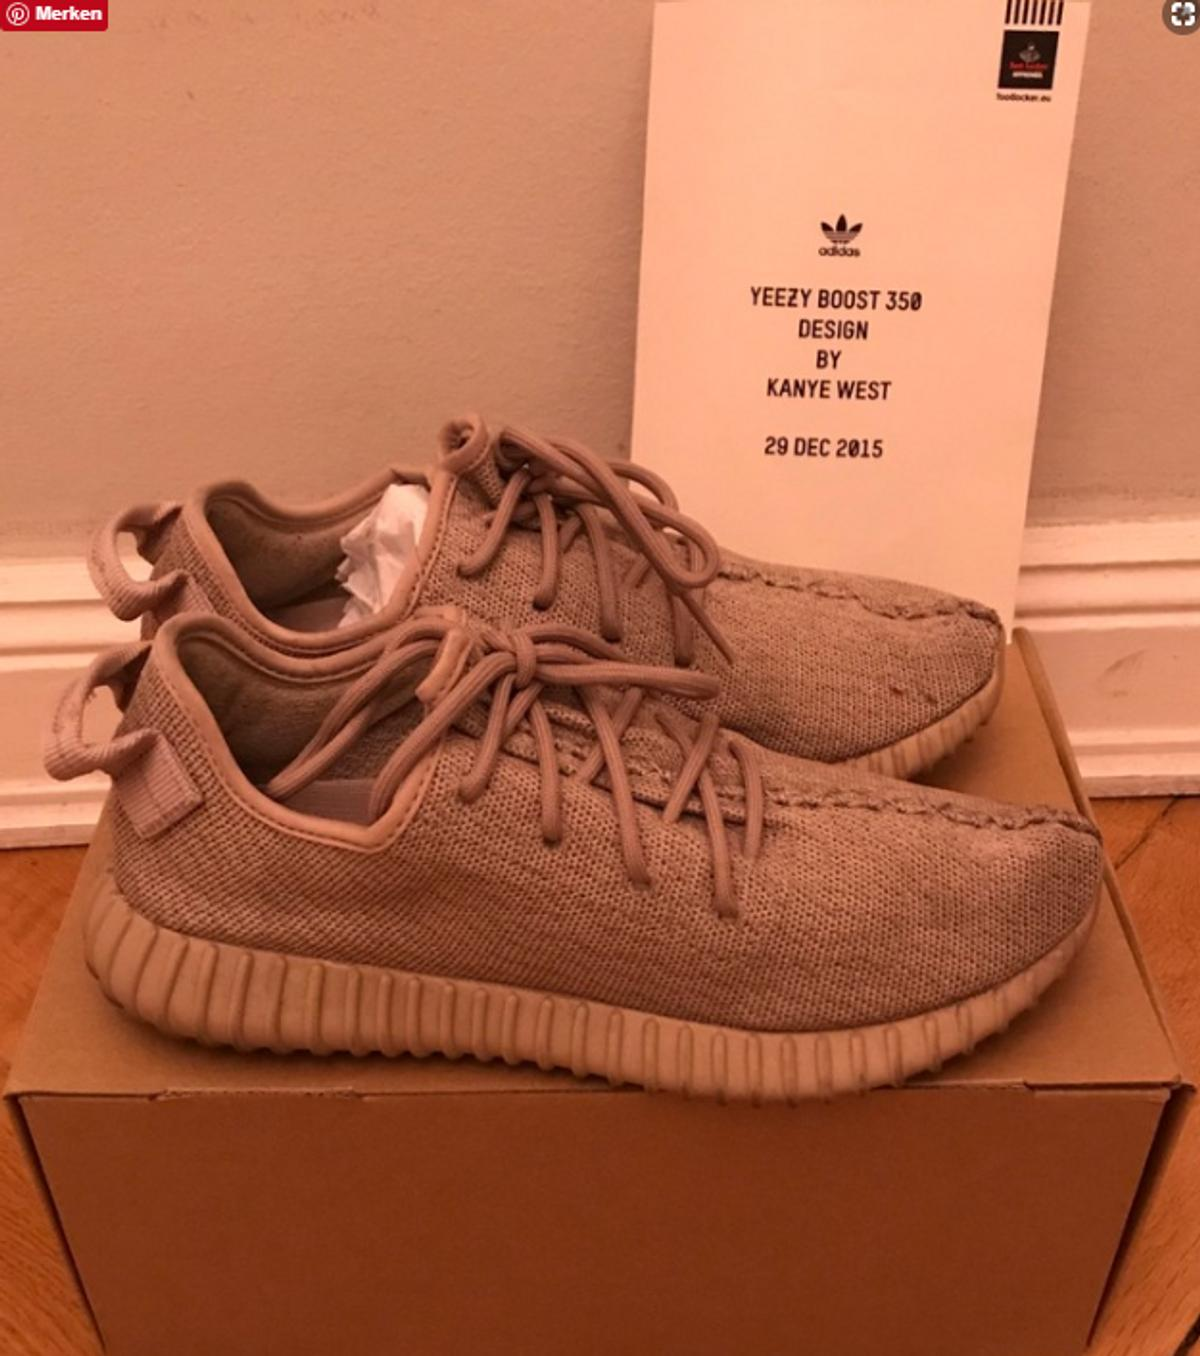 100 % authentische Adidas Yeezy Boost 350 Sneakers. Händler